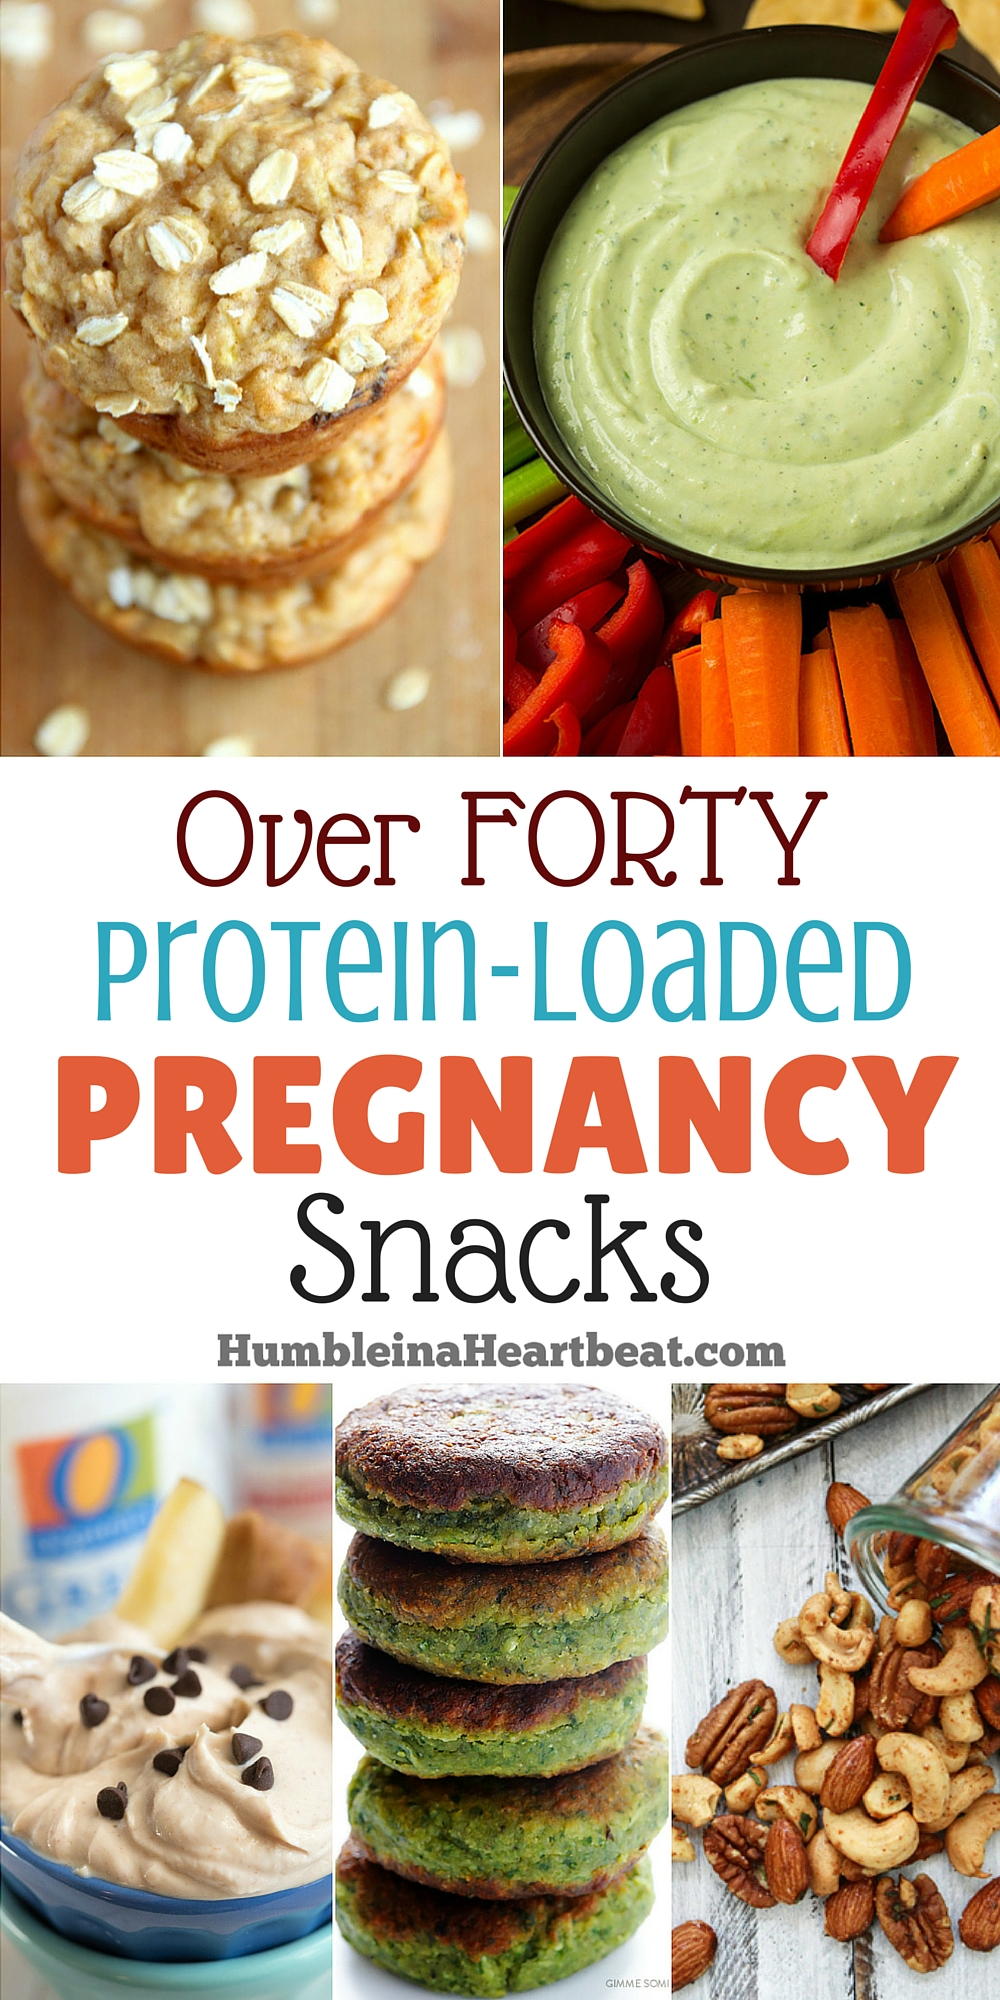 Having trouble getting the extra protein you need for your pregnancy? These protein-loaded pregnancy snacks are perfect for increasing your intake!